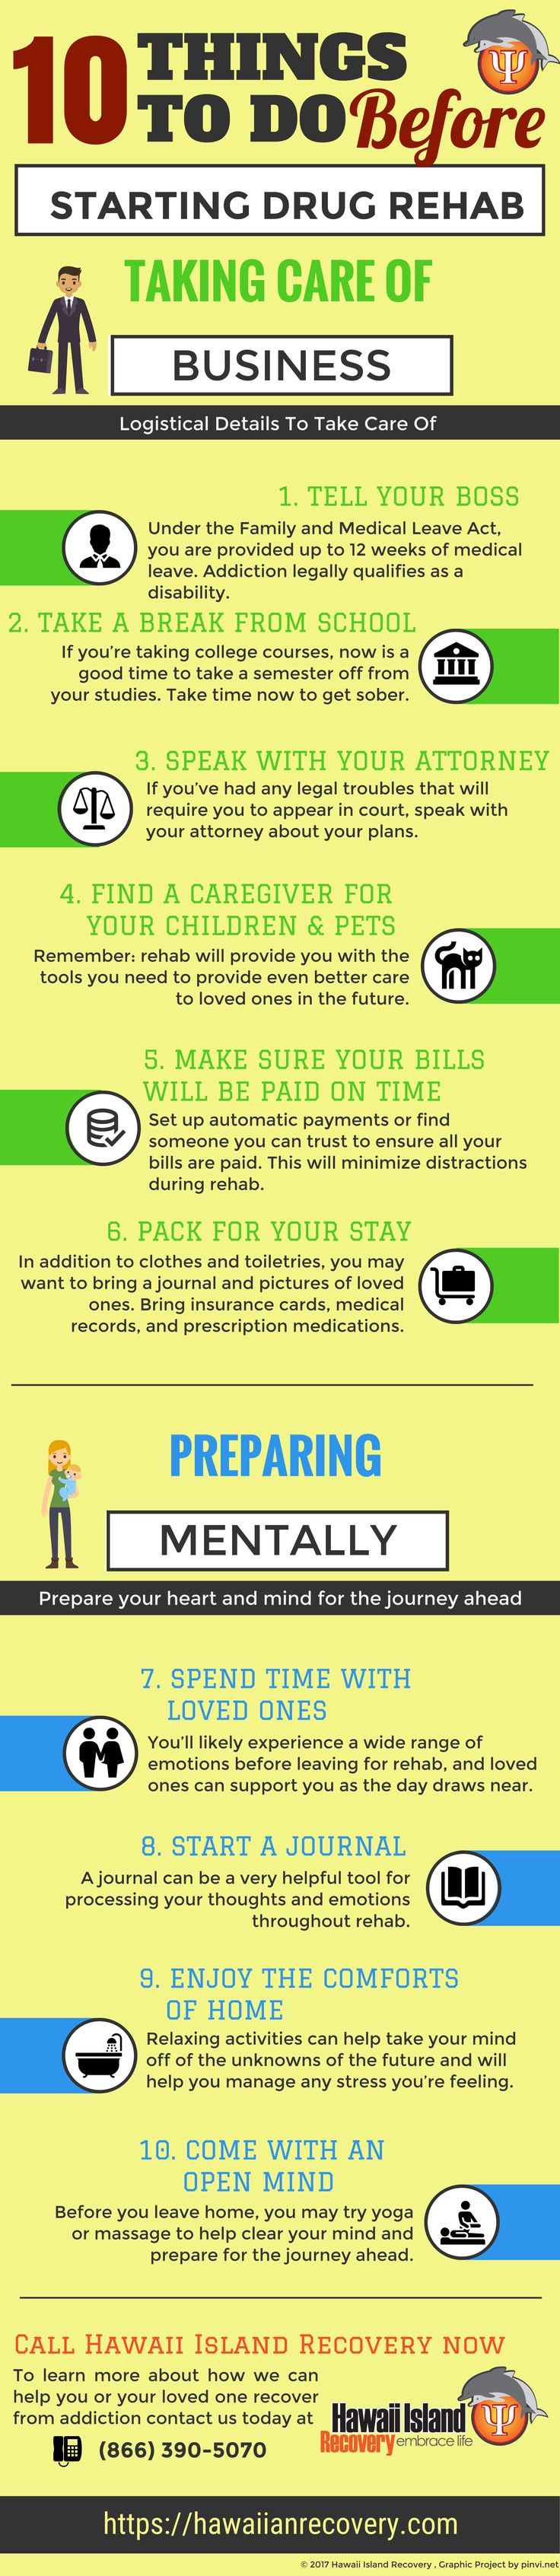 Entering Rehab? Check out these ten ways you can both take care of business and prepare your heart and mind for the journey ahead. #addiction #recovery #hawaii